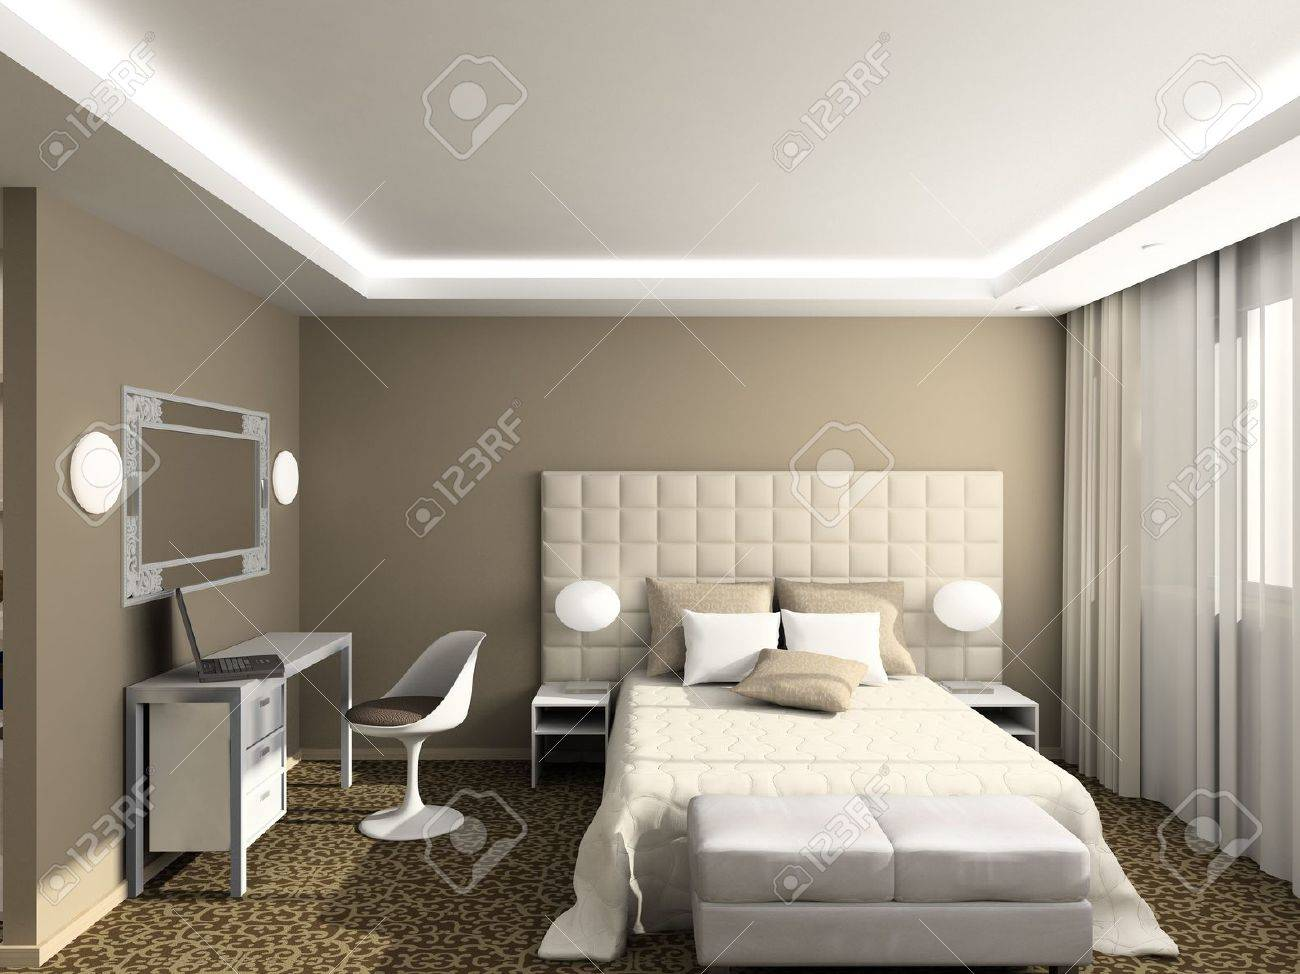 bedroom cabins stock photos images. royalty free bedroom cabins